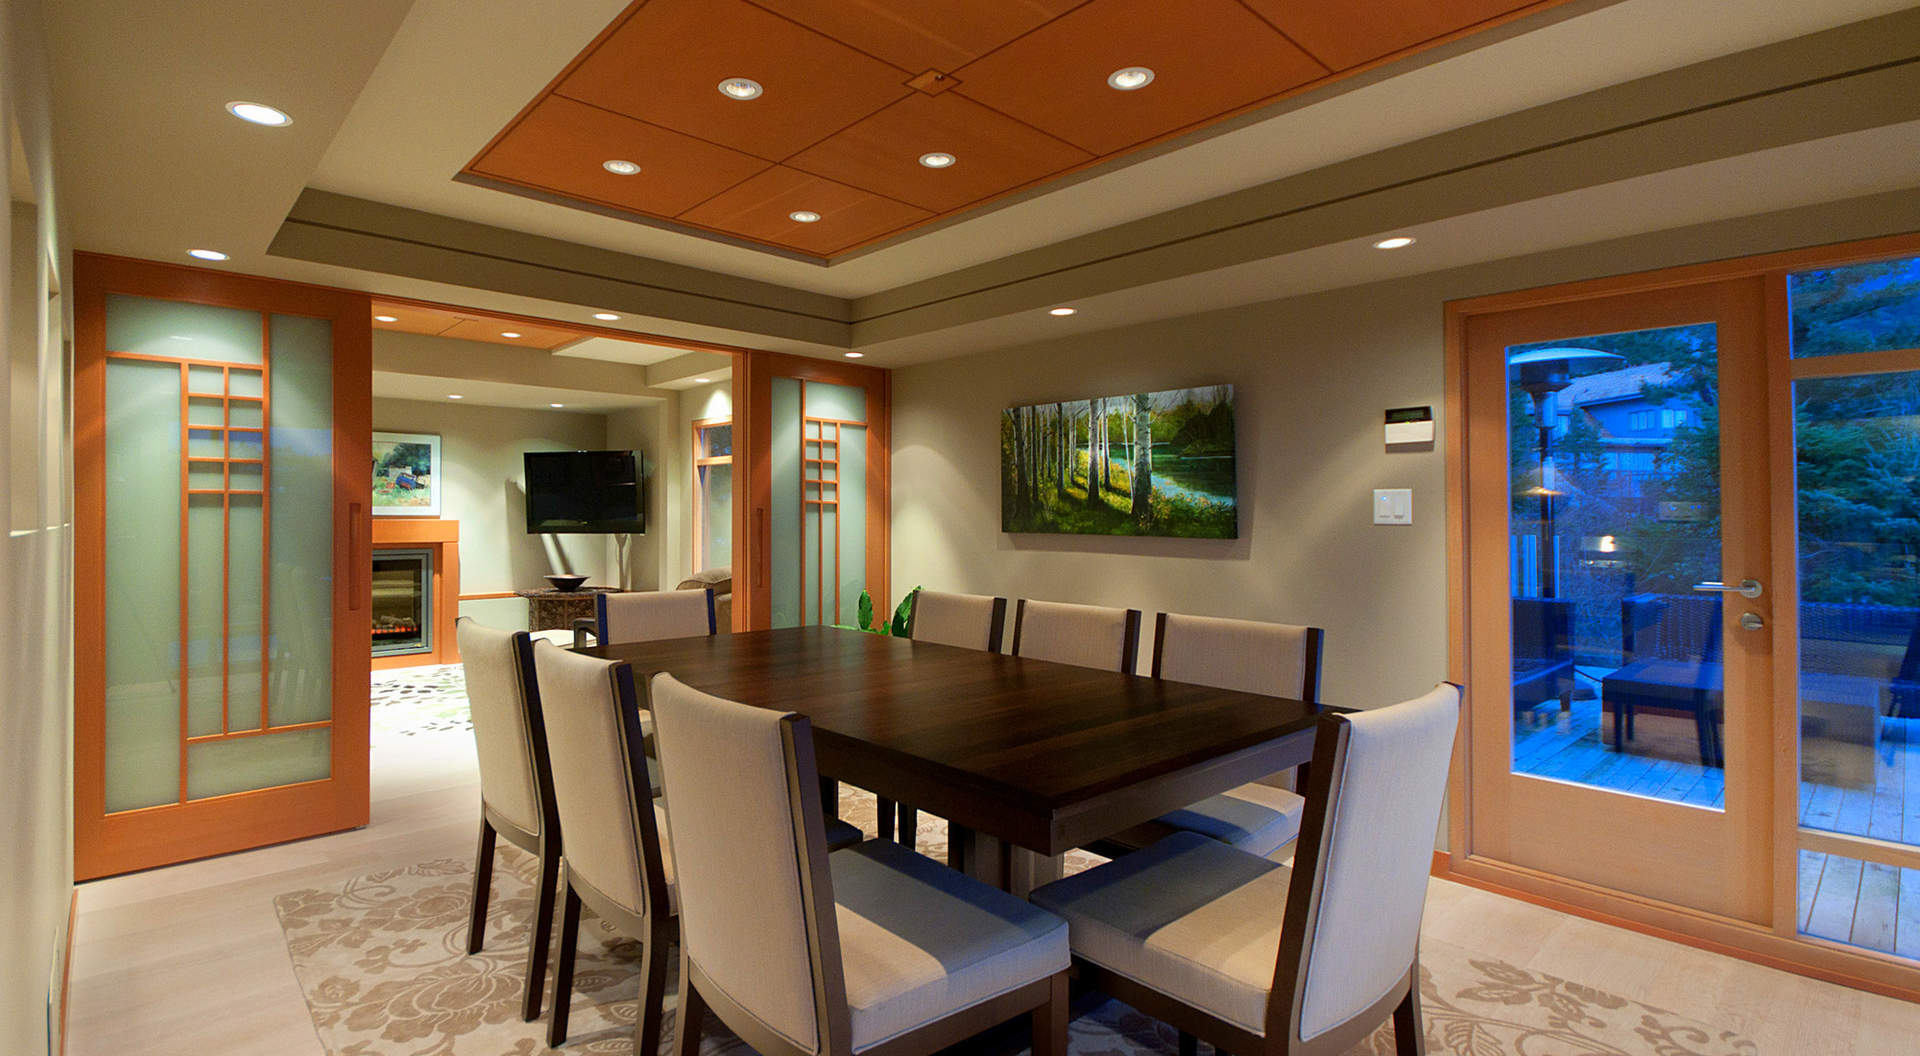 Fabulous Dining Room with Architectural Ceiling Detail